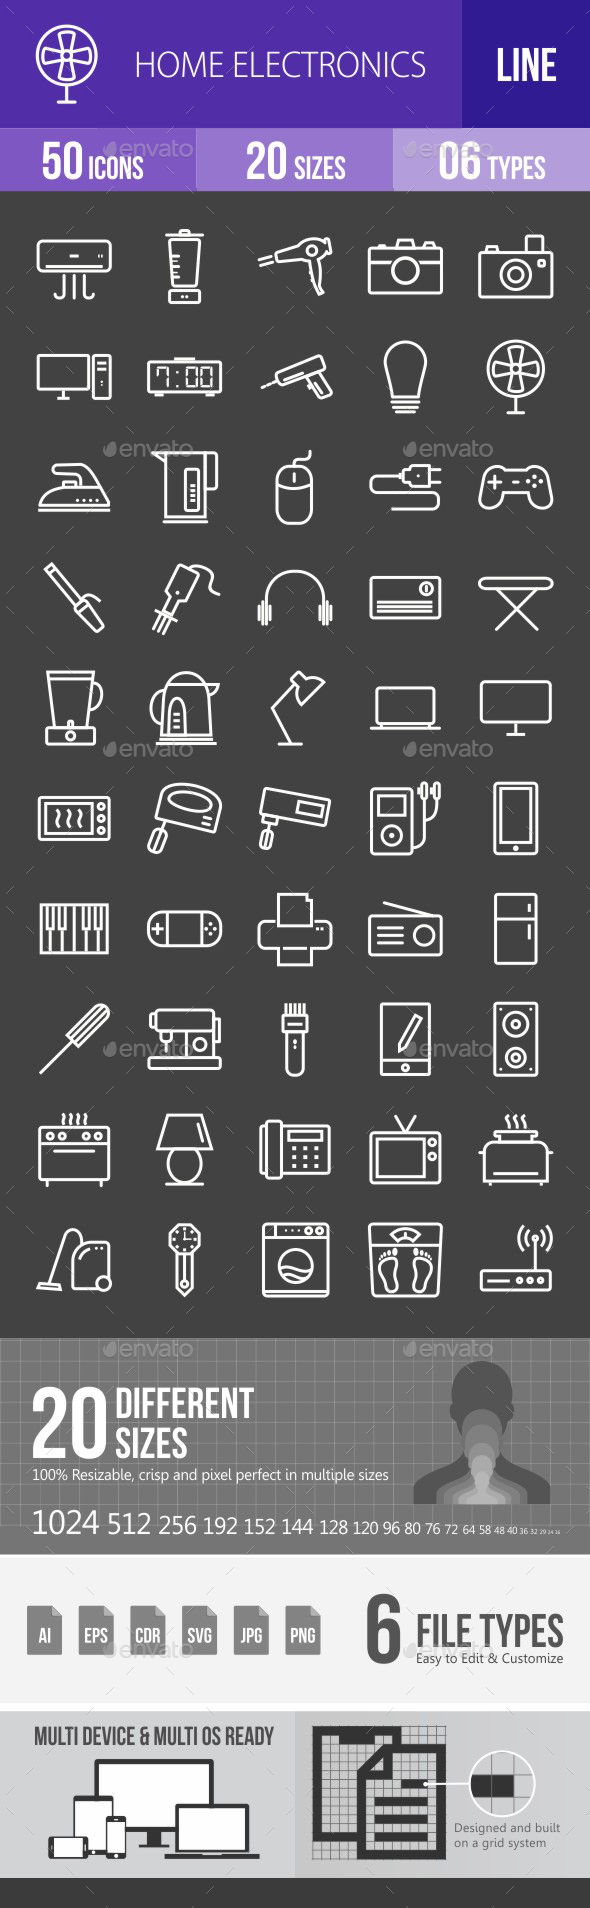 Home Electronics Line Inverted Icons - Icons